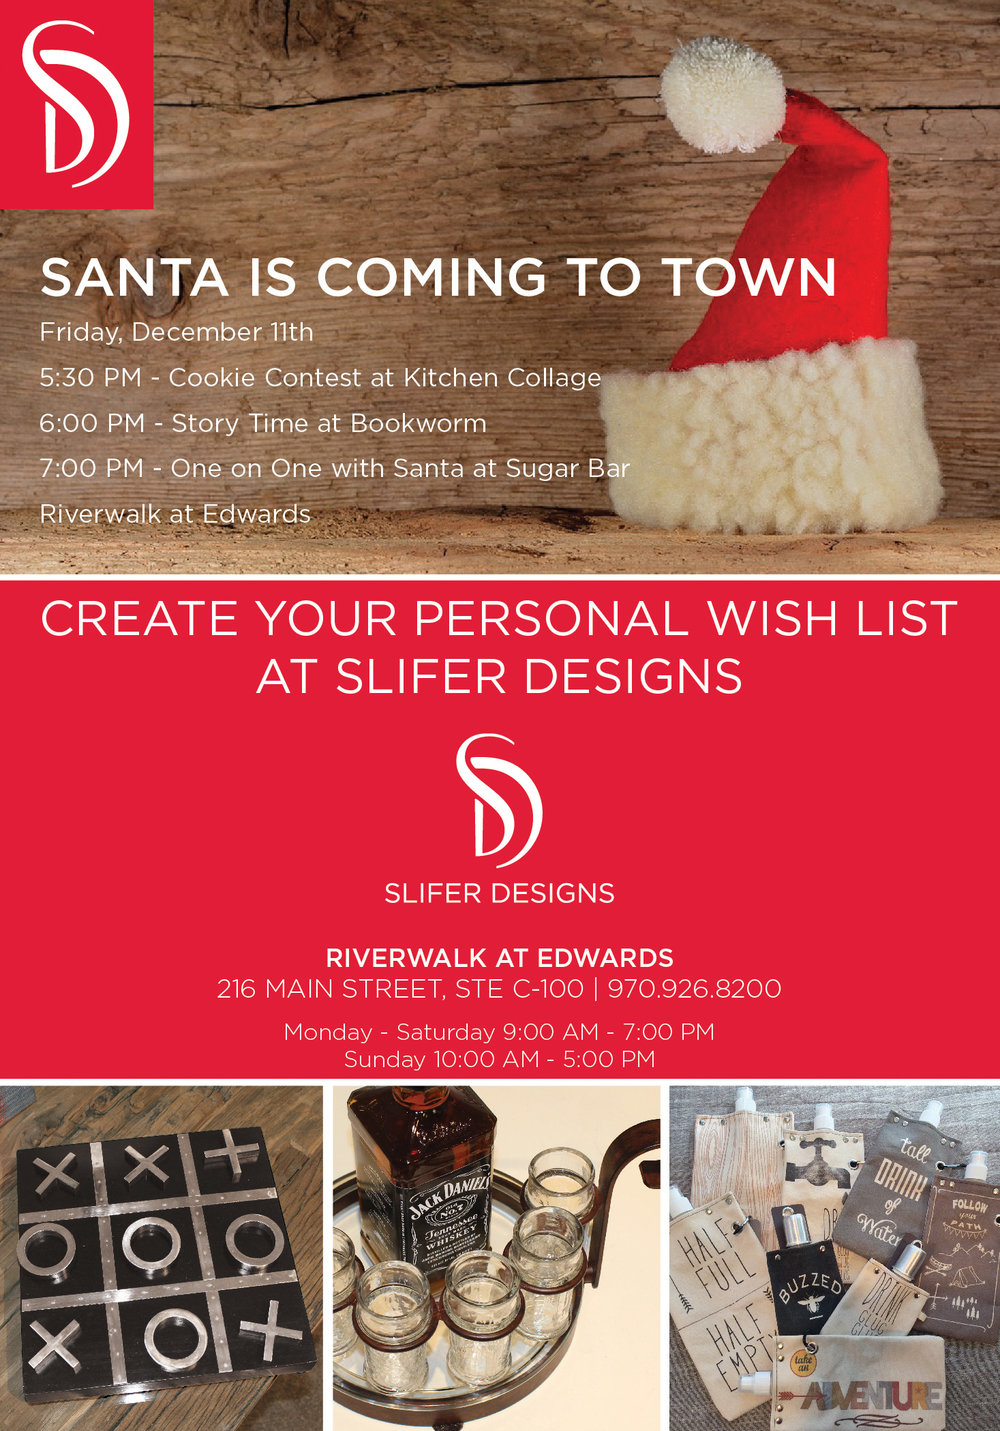 Copy of Holiday Ad for Slifer Designs